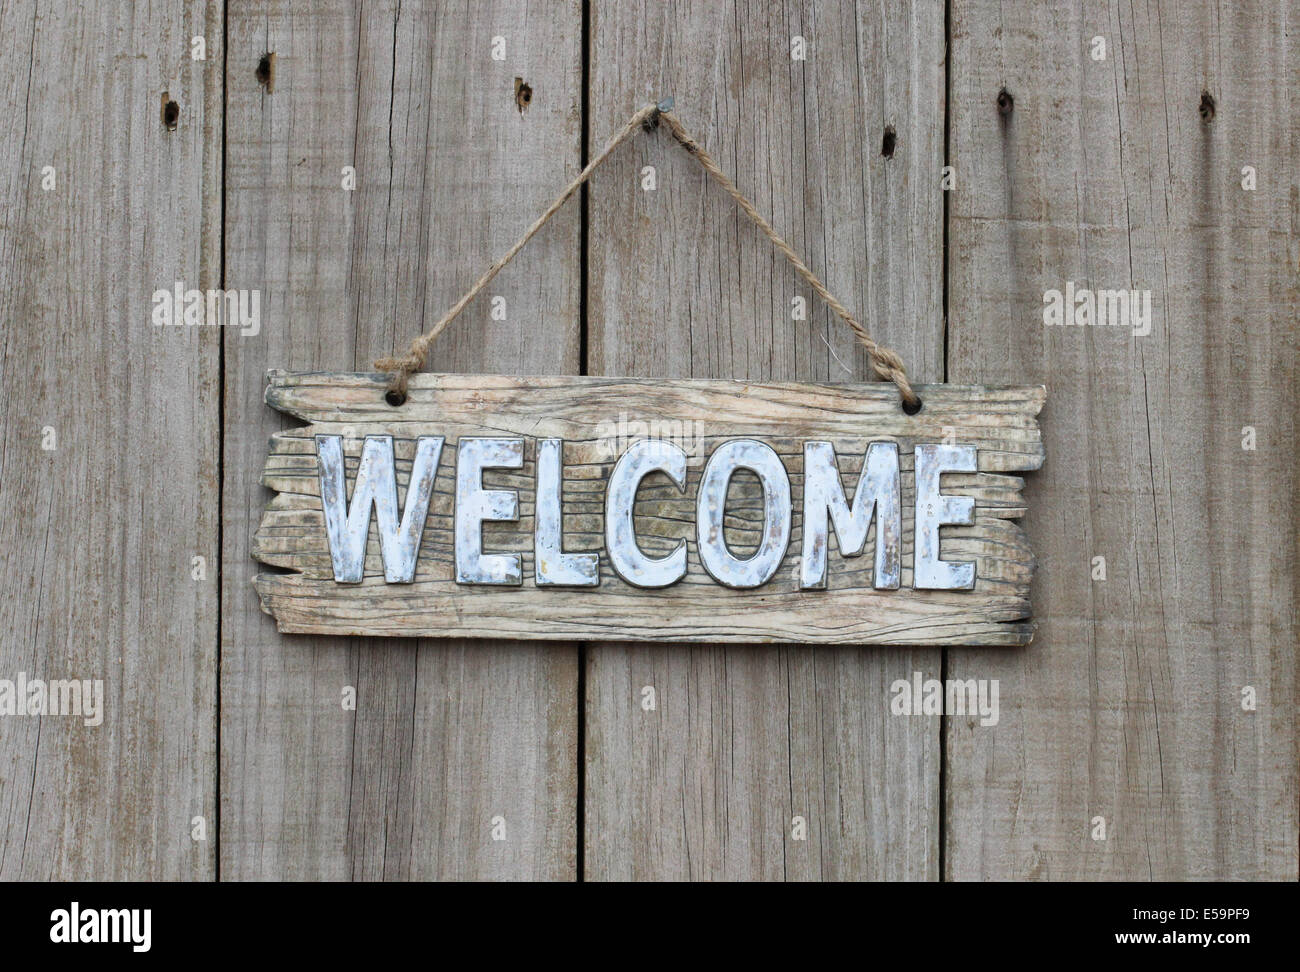 Rustic Wood Welcome Sign Hanging On Wooden Background